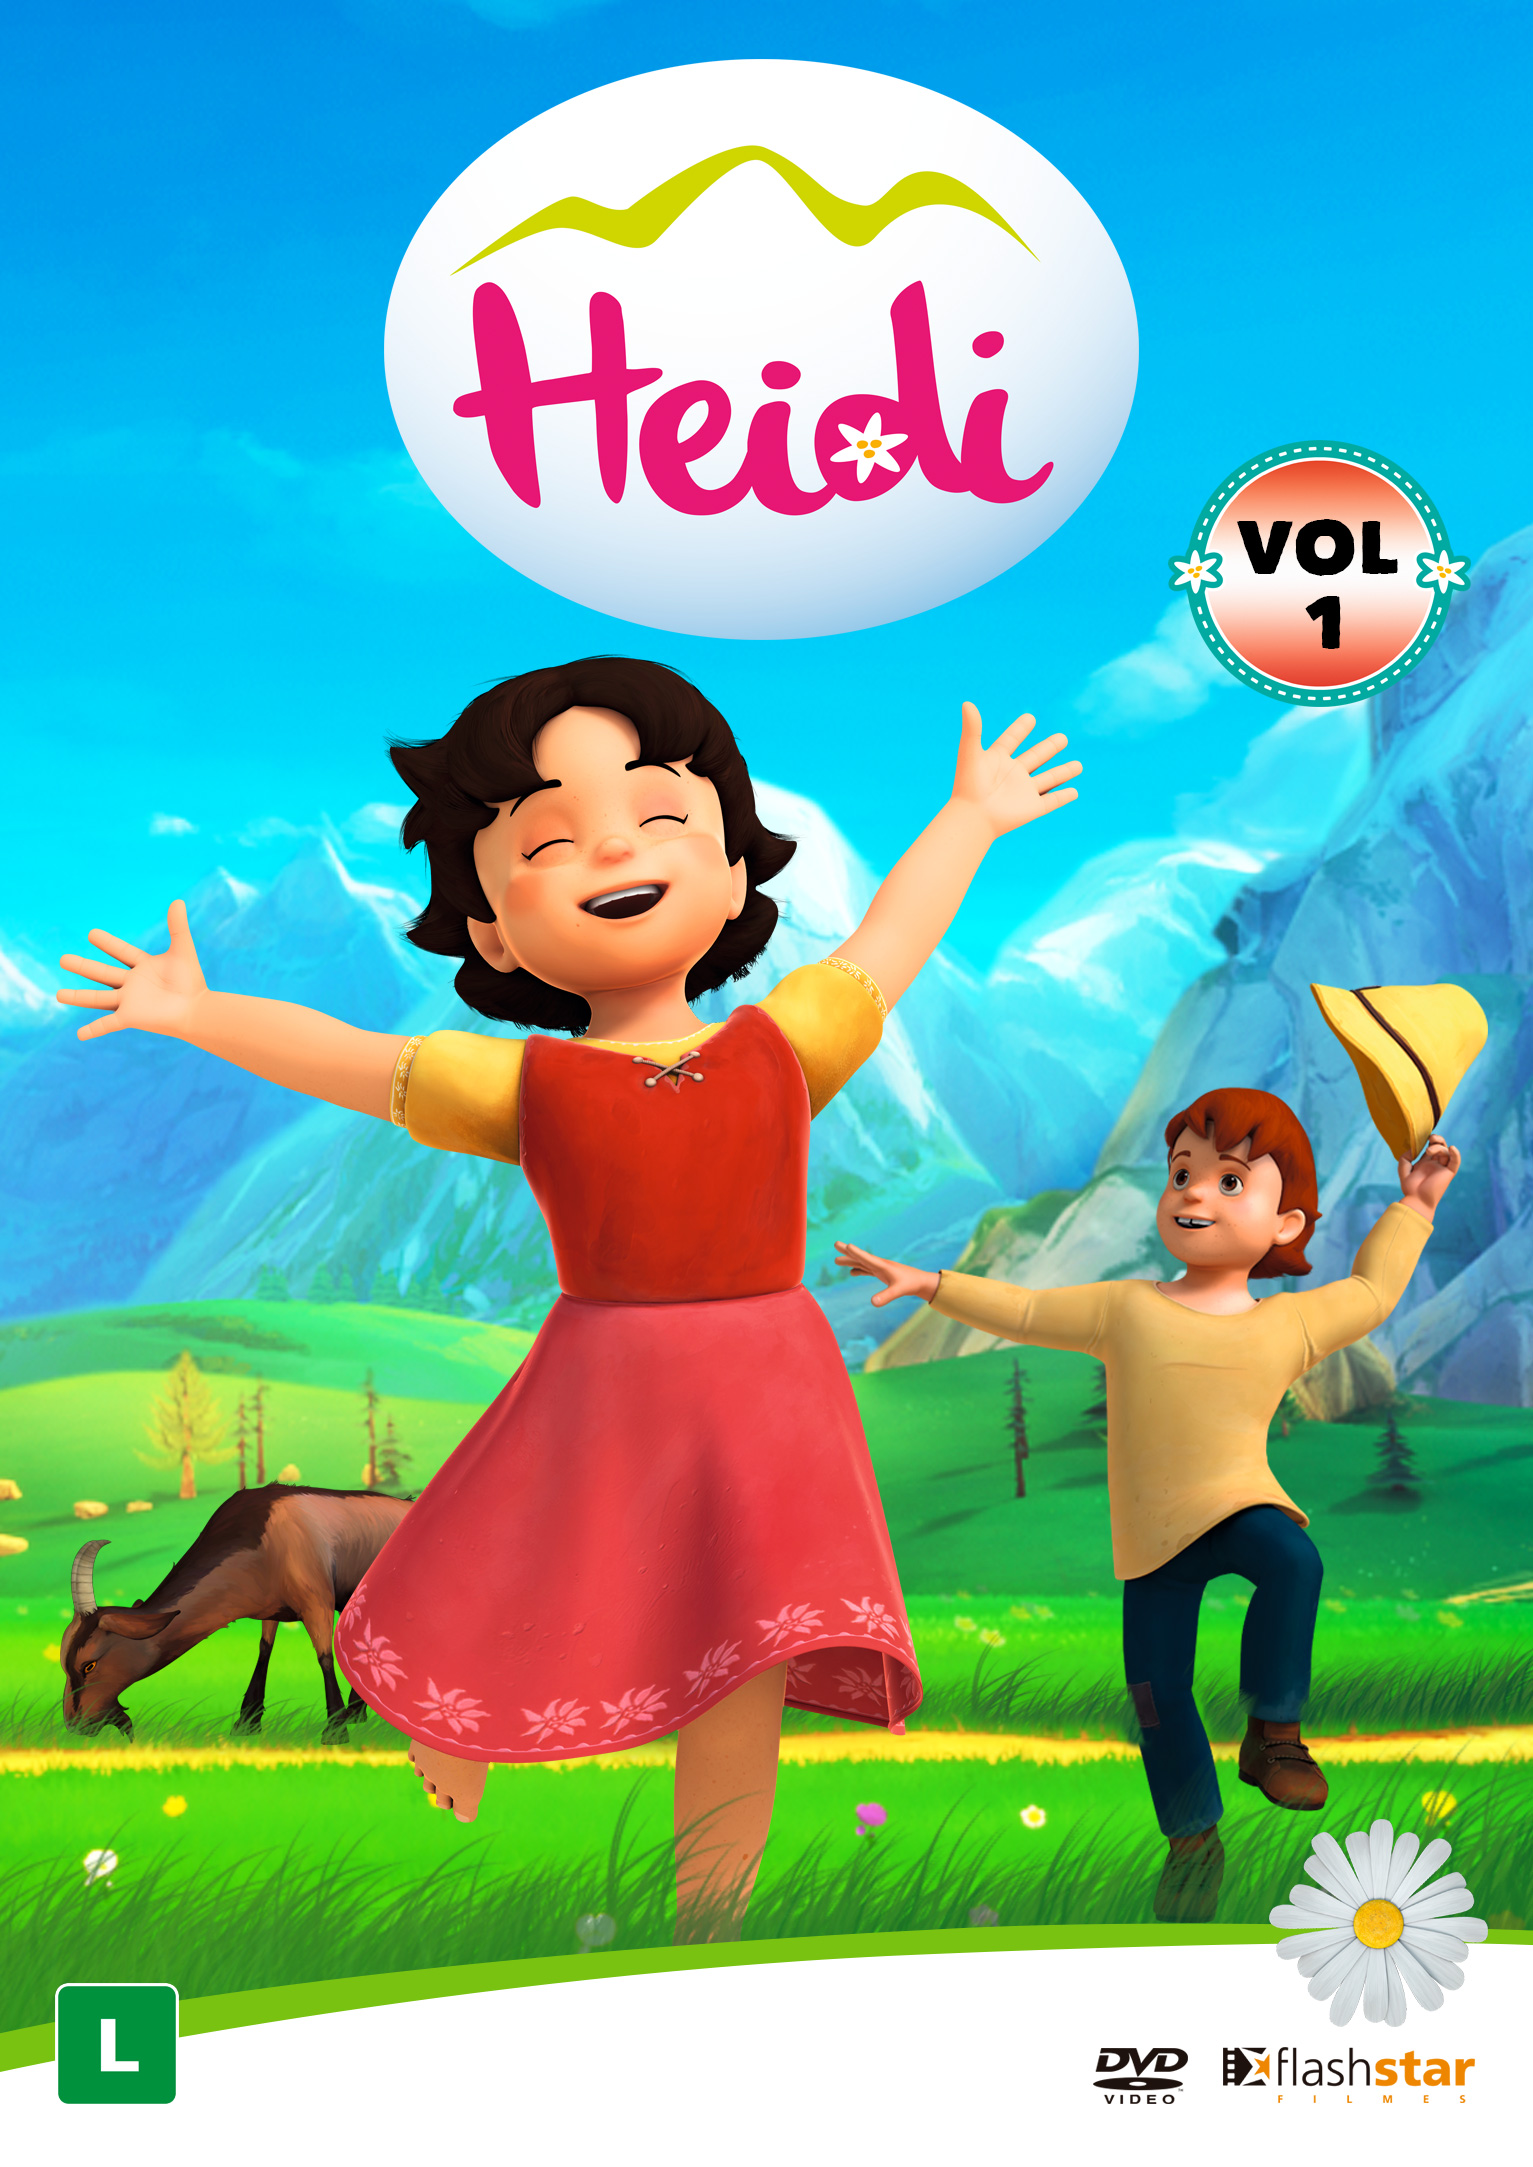 Heidi Vol 1 Video New Movies